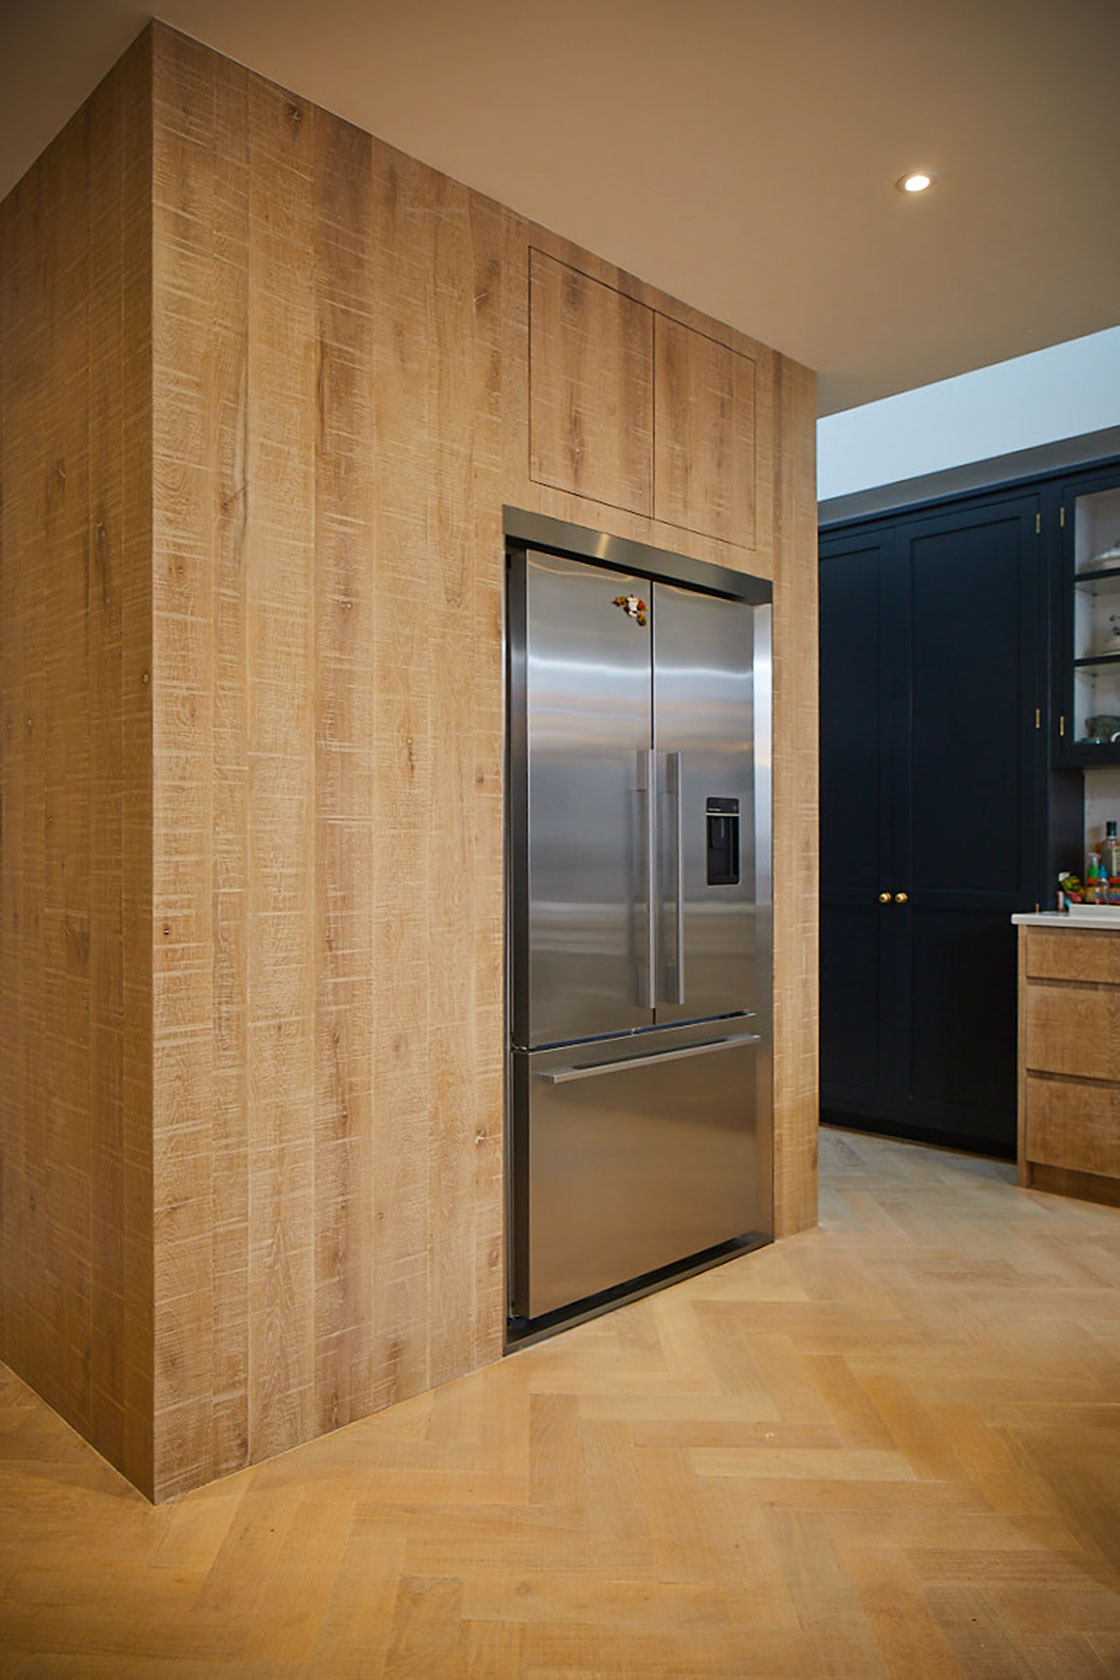 American stainless fridge freezer integrated in to white washed oak kitchen cabinets